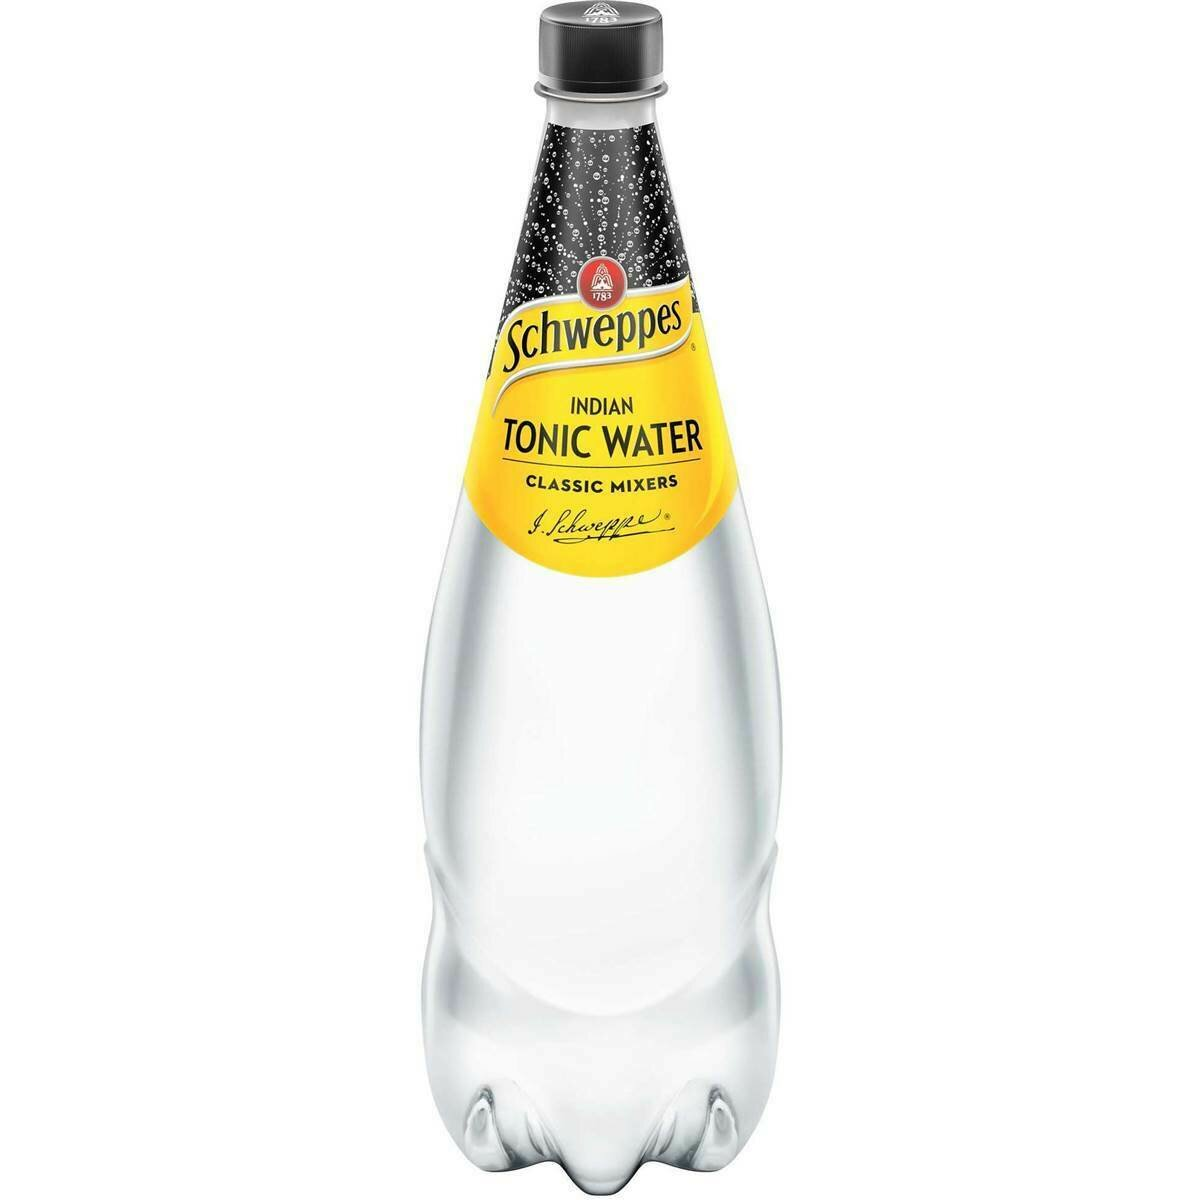 Schweppes Indian Tonic Water 1.1L